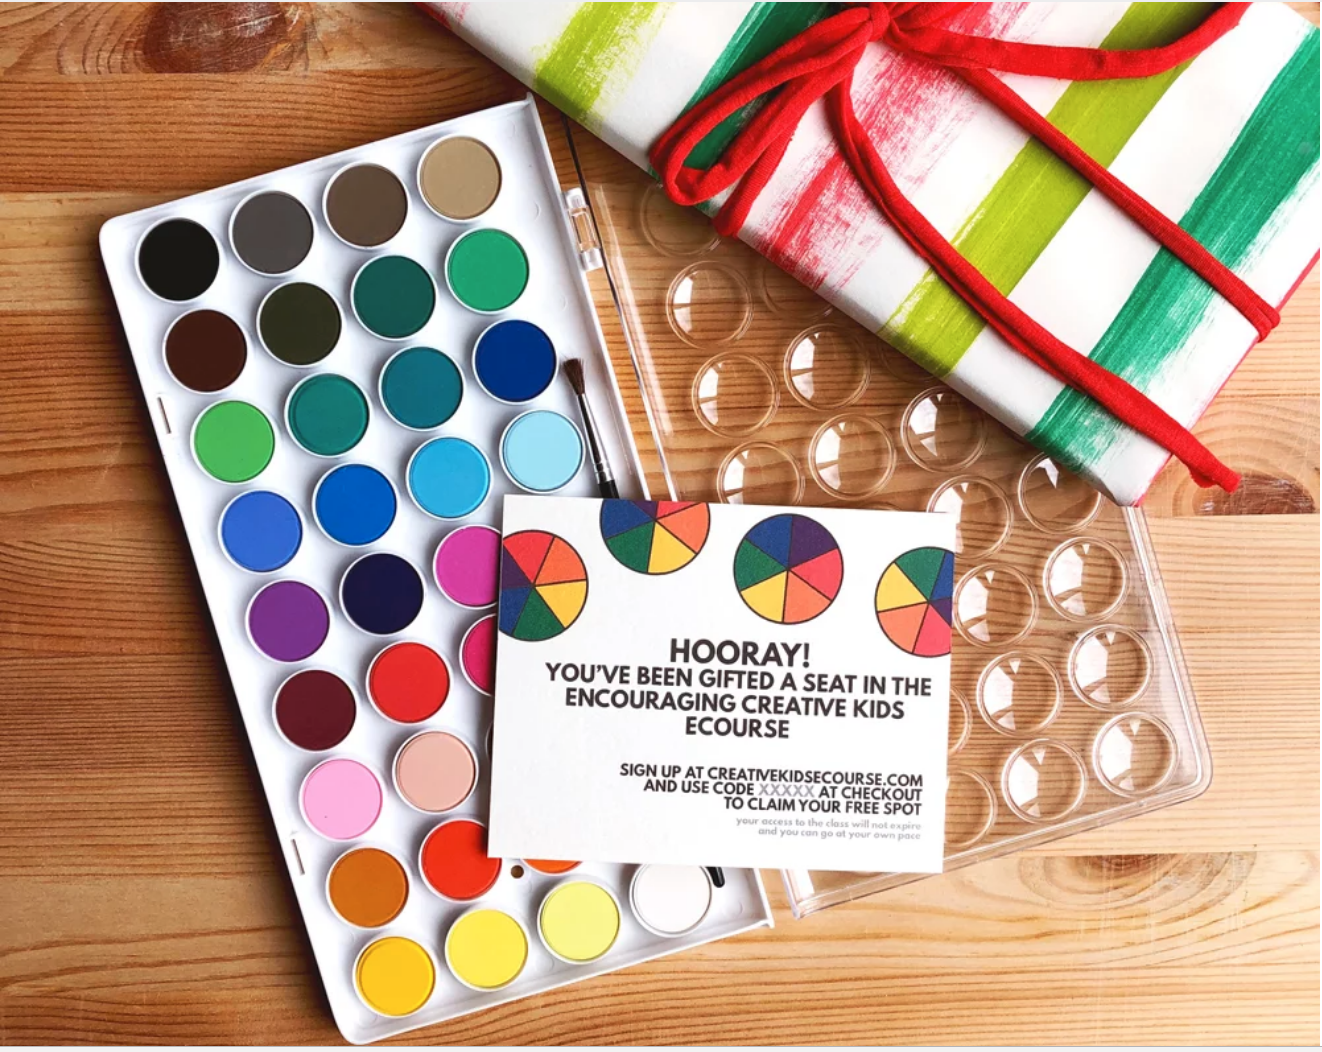 Just looking at this photo makes me want to break out the water colors. An inexpensive paint palette paired with an online class would make a unique and fun gift for an 11-year-old girl!